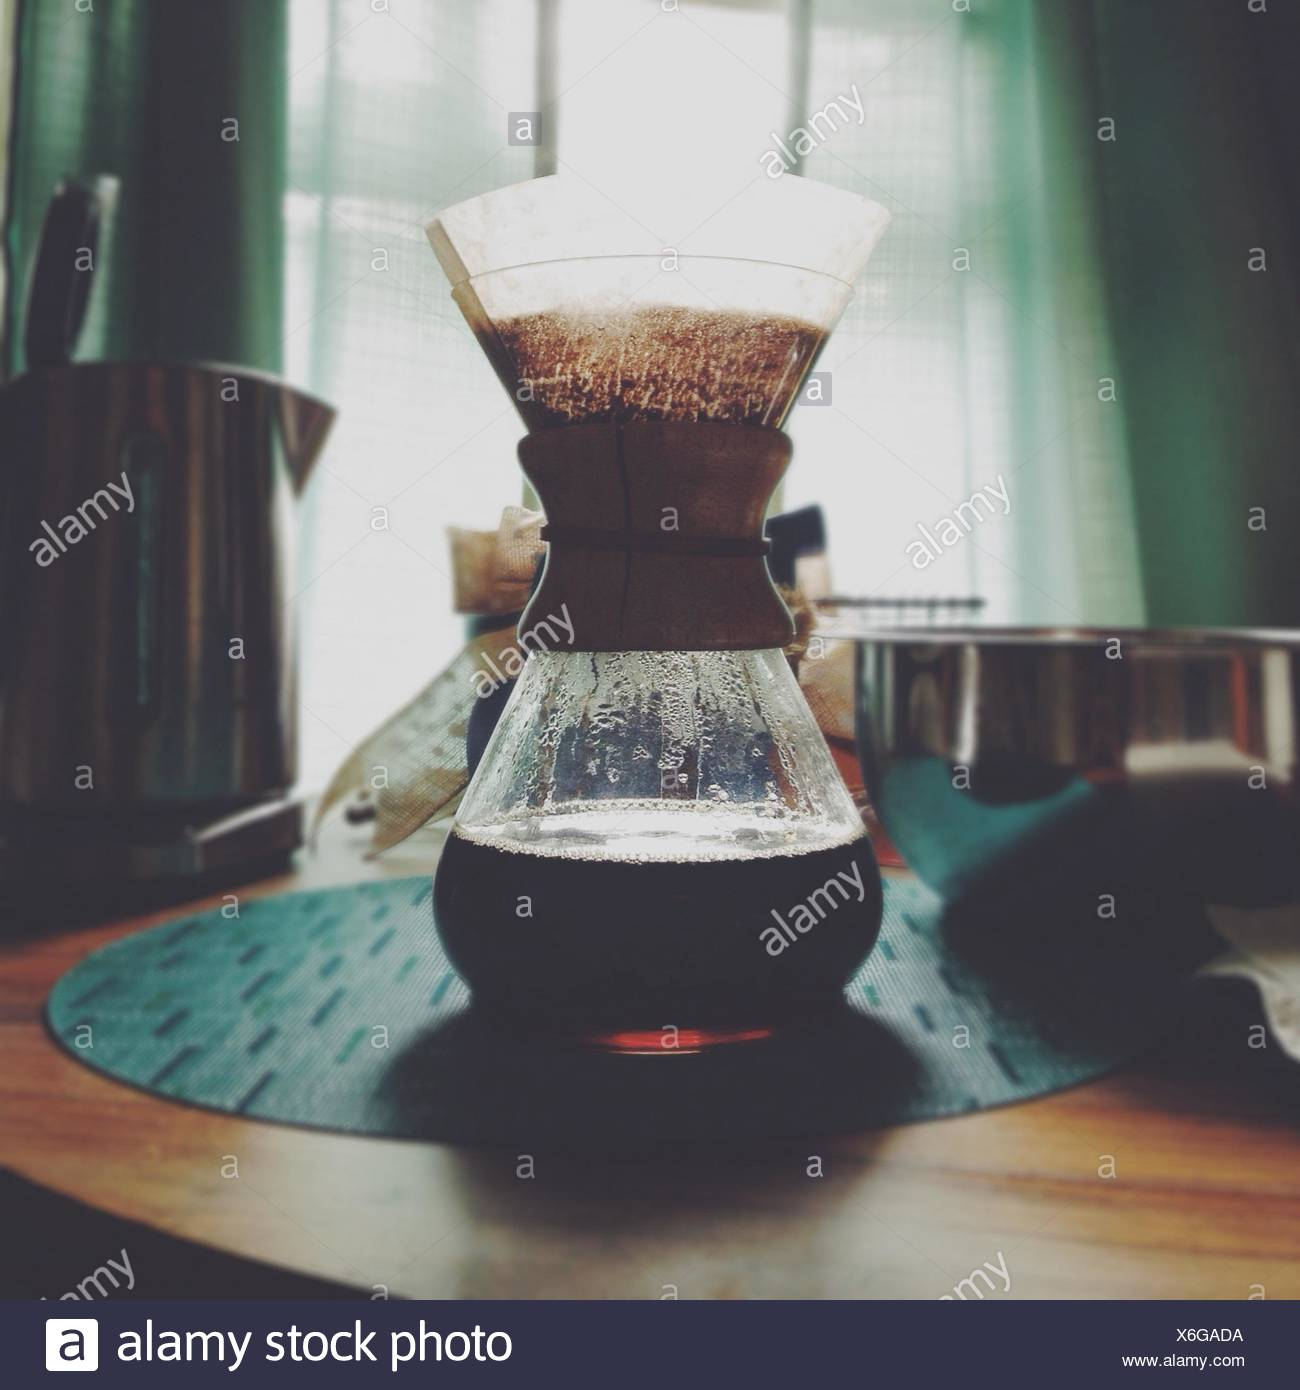 Coffee brewing in home interior - Stock Image